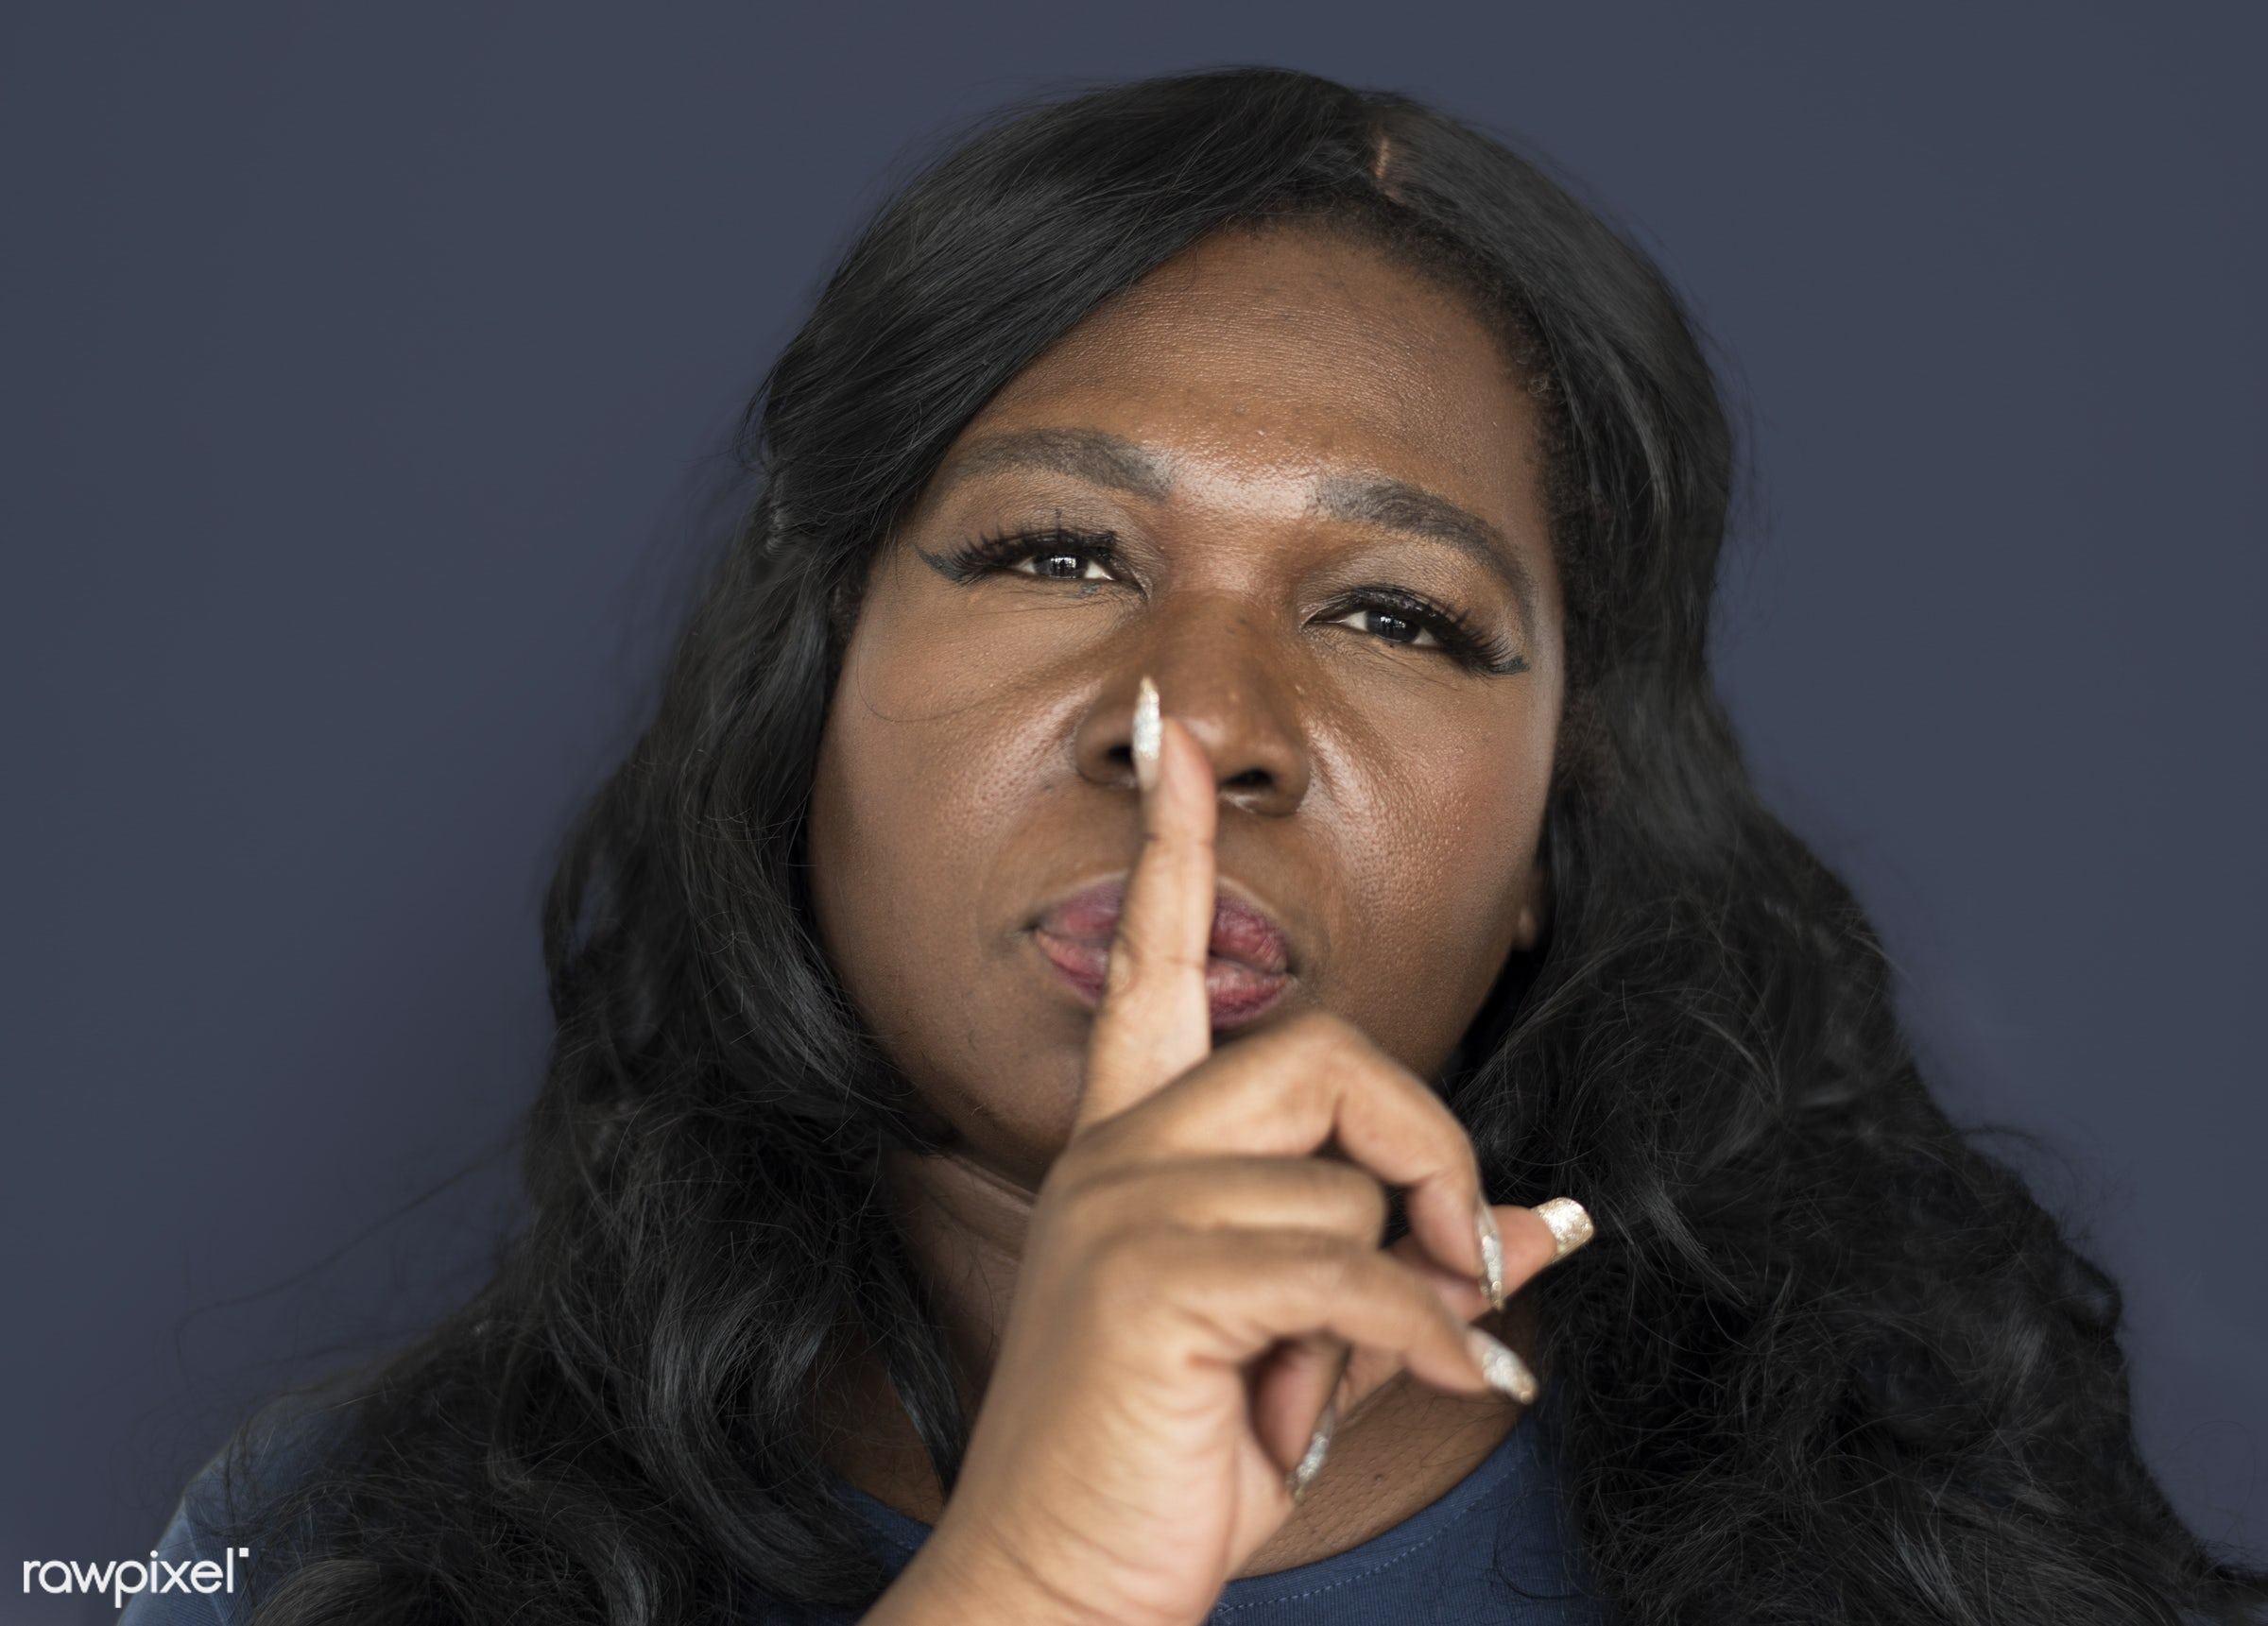 studio, expression, person, model, chubby, race, people, hand, gossip, style, woman, lifestyle, casual, isolated, african...